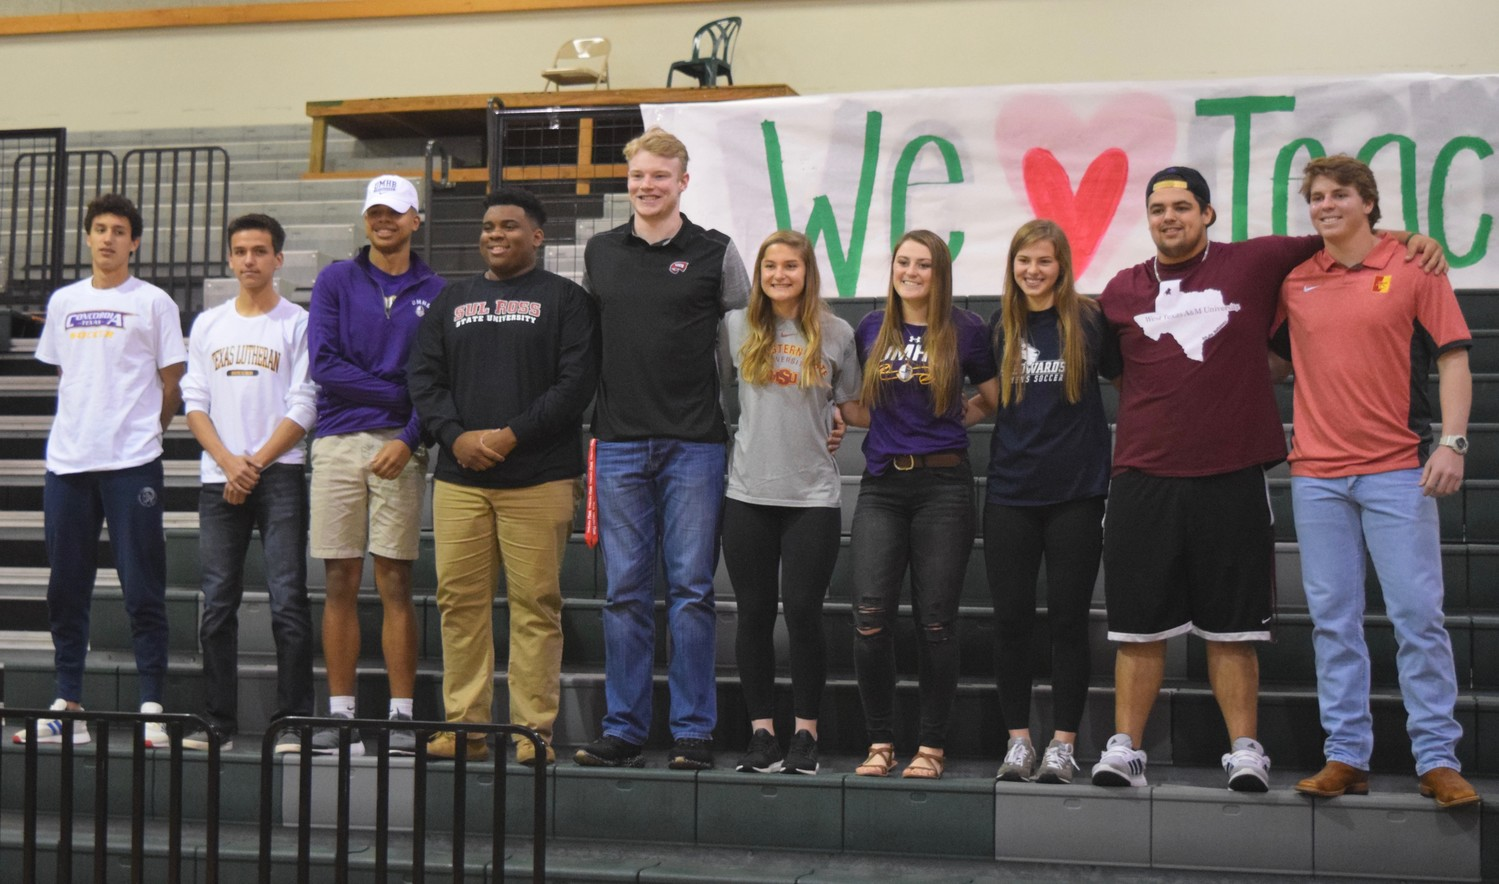 Cedar Park college signings from Left: Griffin Bacher (Concordia), Lance Radtke (Texas Lutheran), Aries Ramos (Mary Hardin-Baylor), Trajaan Chase (Sul Ross University), Mason Brooks (Western Kentucky), Dana Cripe (Midwestern State University), Skyler Cooper (Mary Hardin-Baylor), Jewell Resseguie (St. Edwards), Jonathan Kelly (West Texas A&M) and Mak Sexton (Pittsburg State).